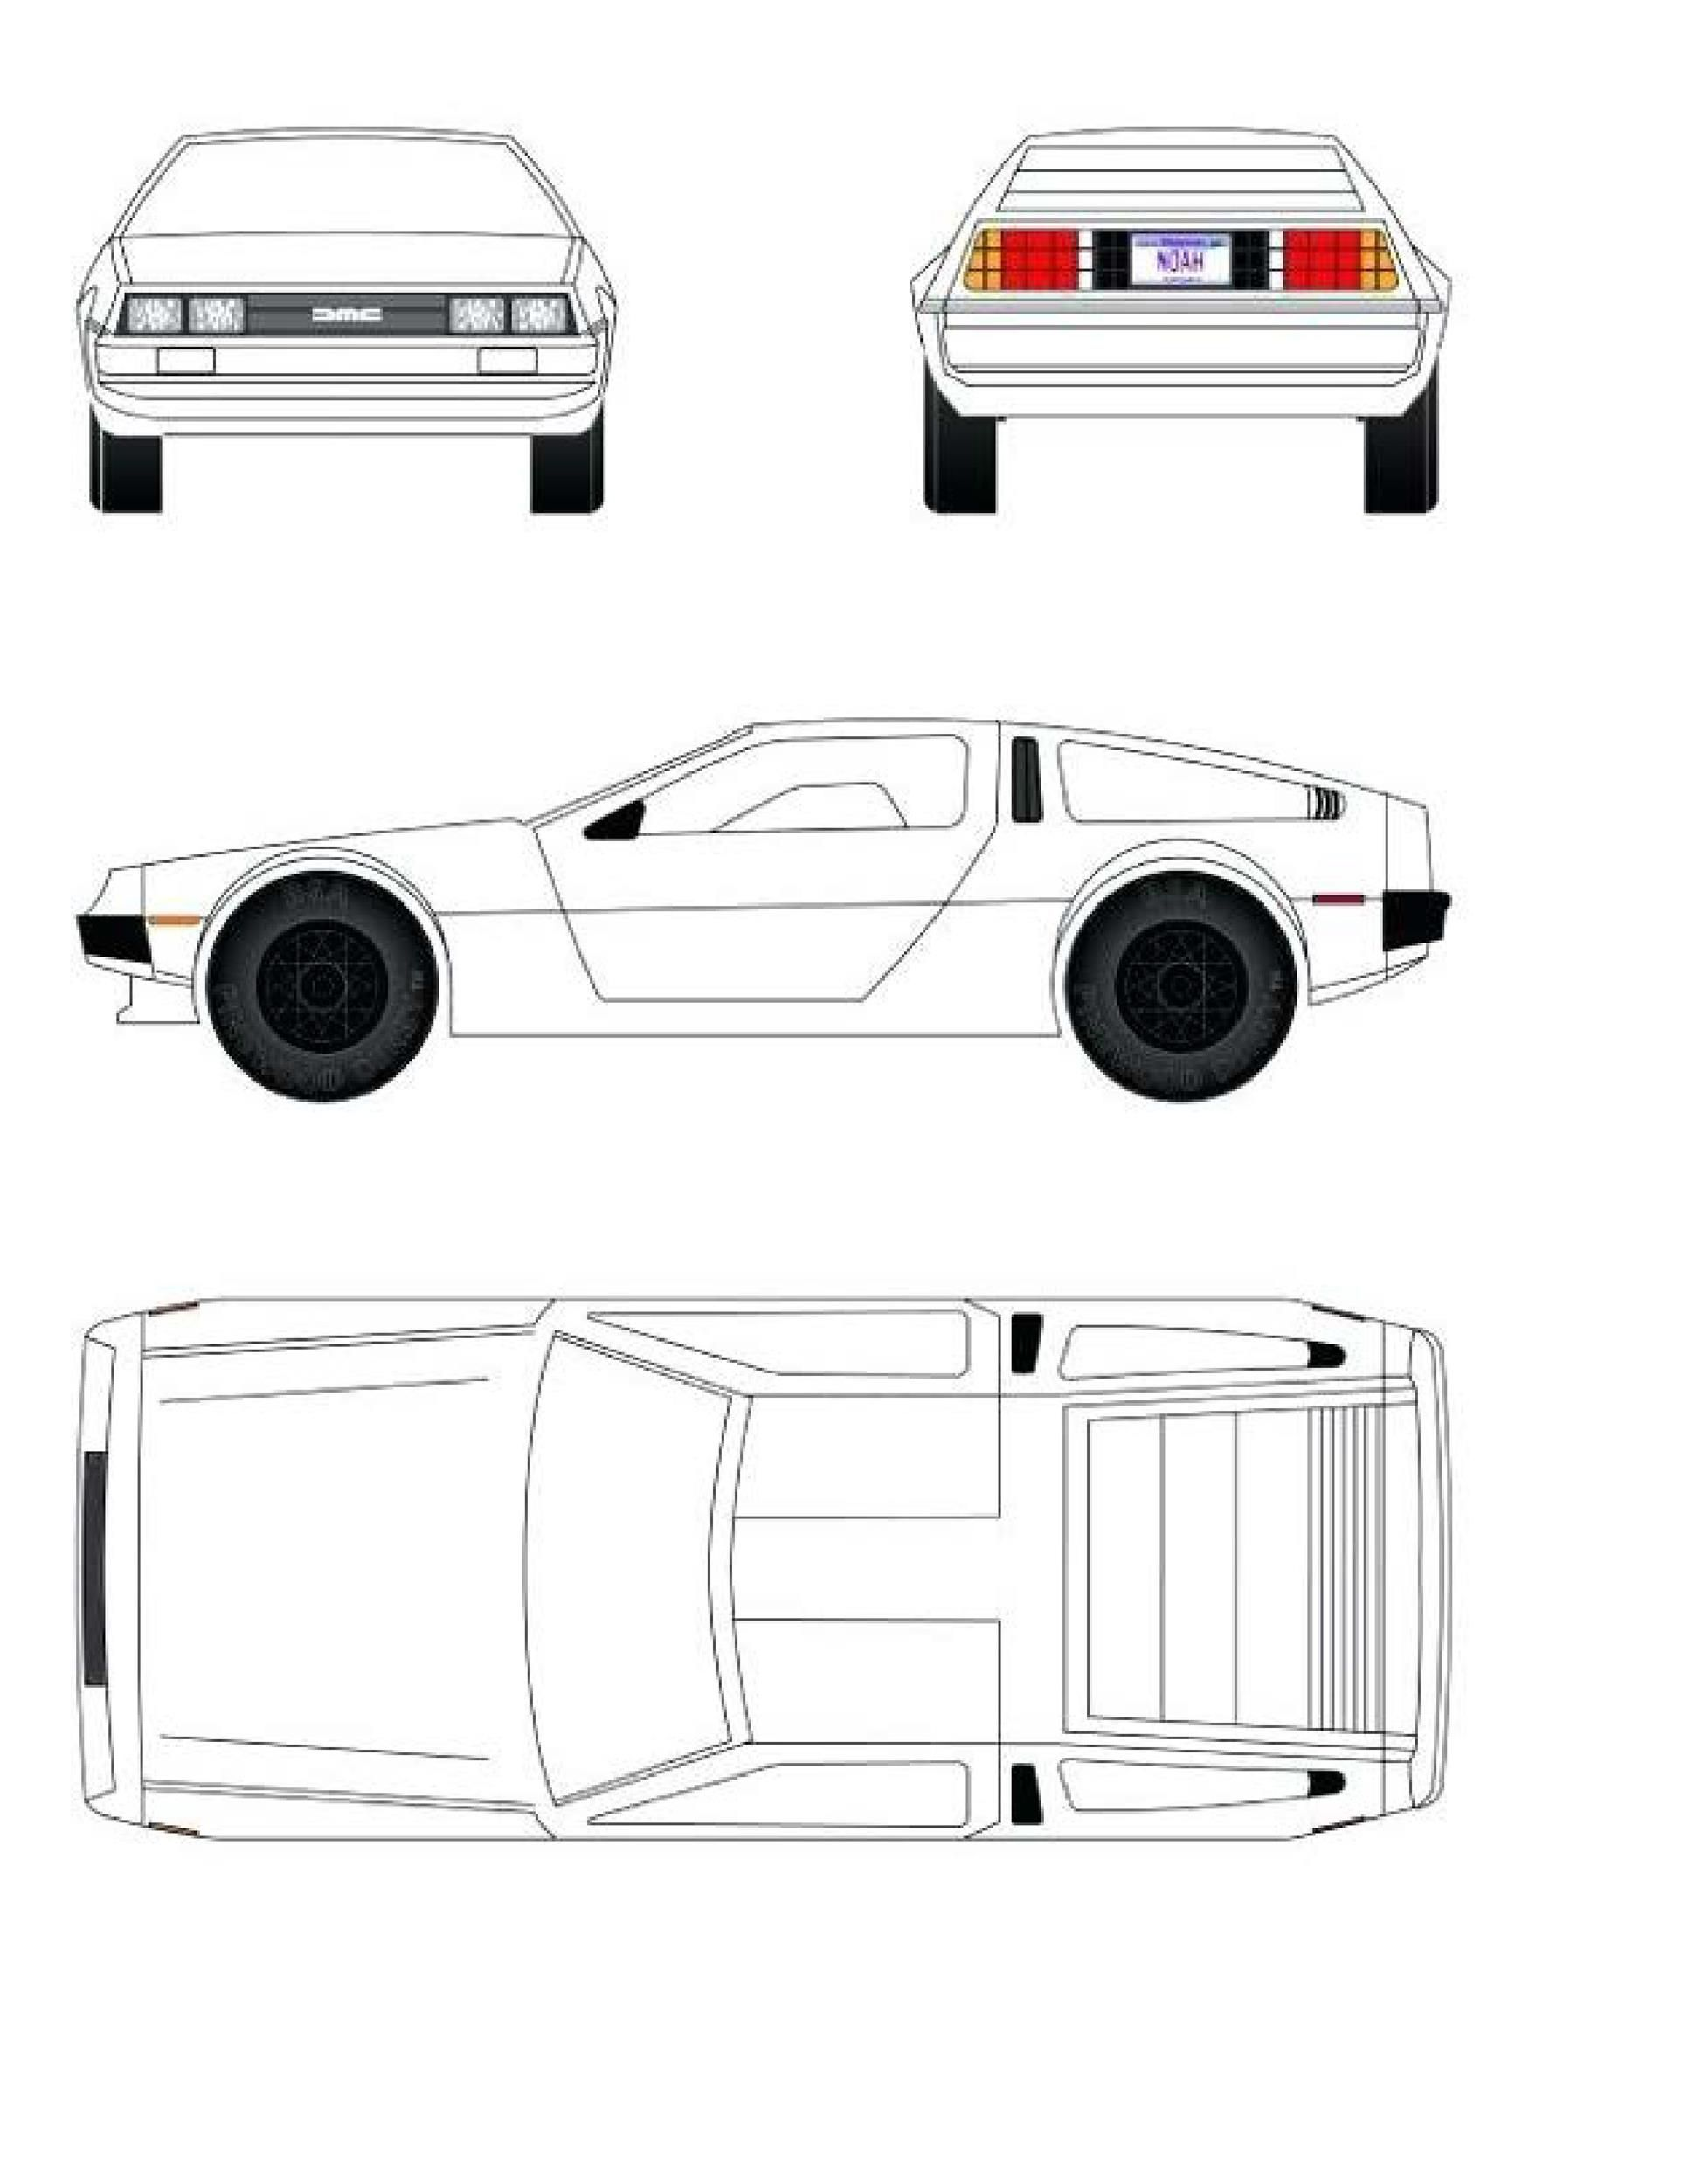 009 Staggering Fastest Pinewood Derby Car Template Design  Templates WorldFull